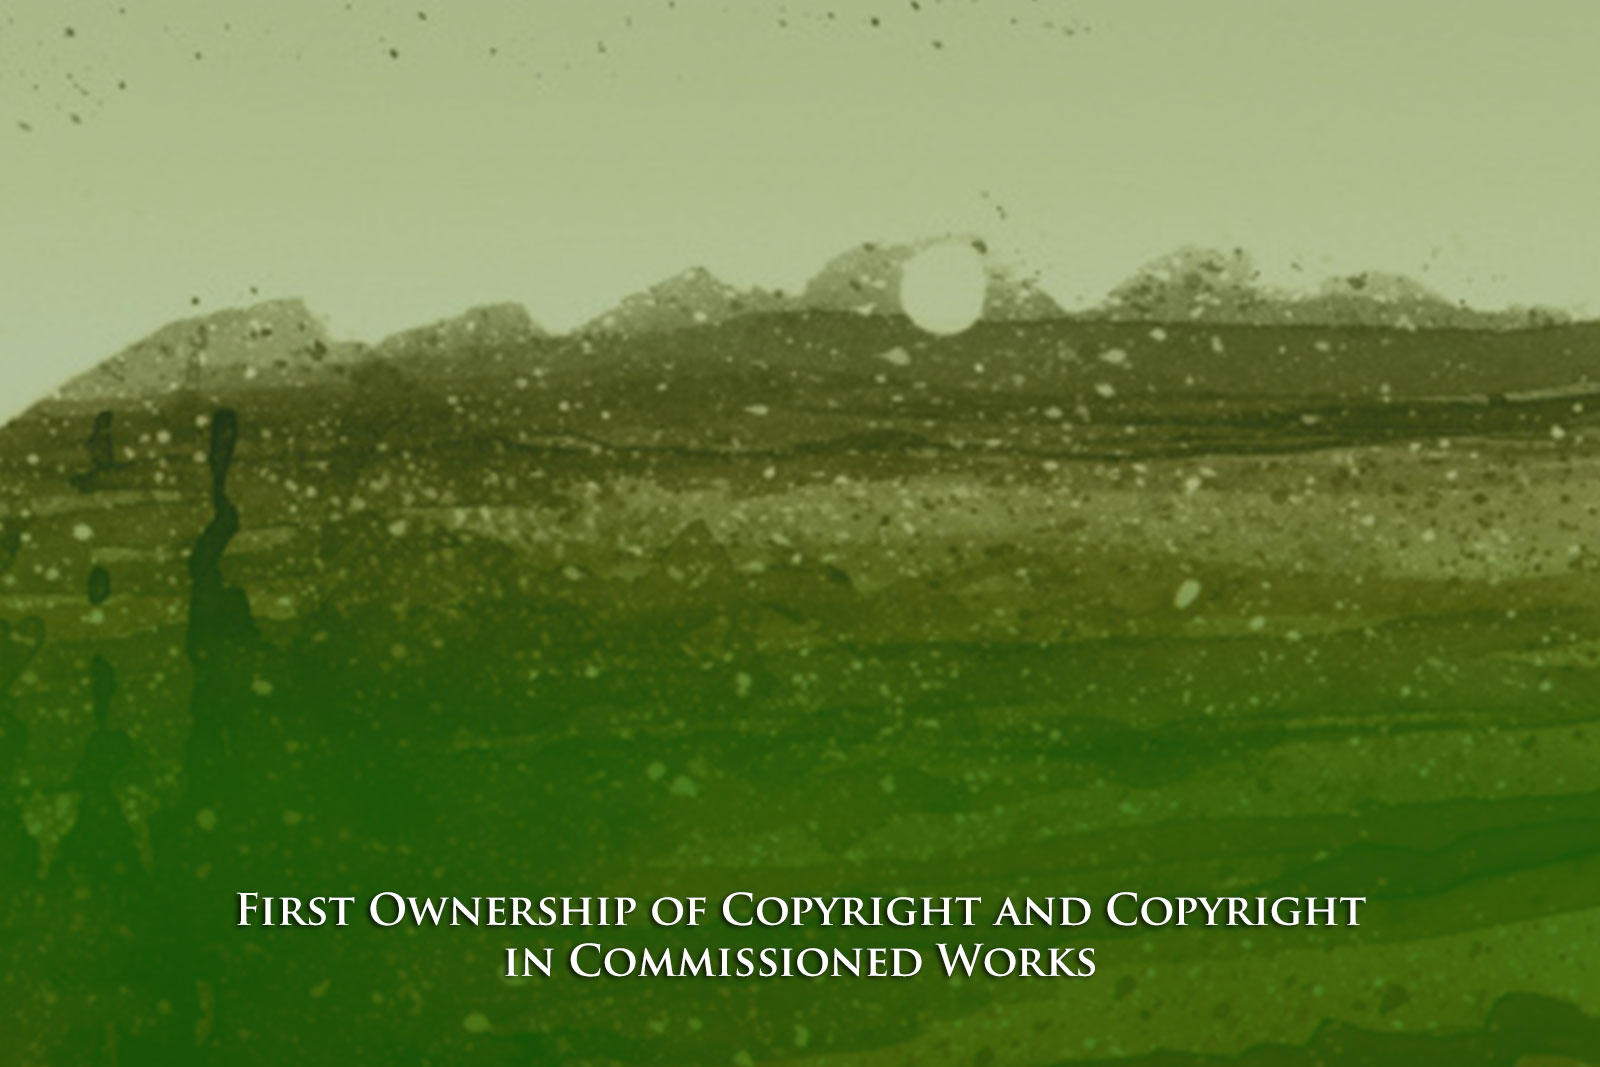 First Ownership of Copyright and Copyright in Commissioned Works